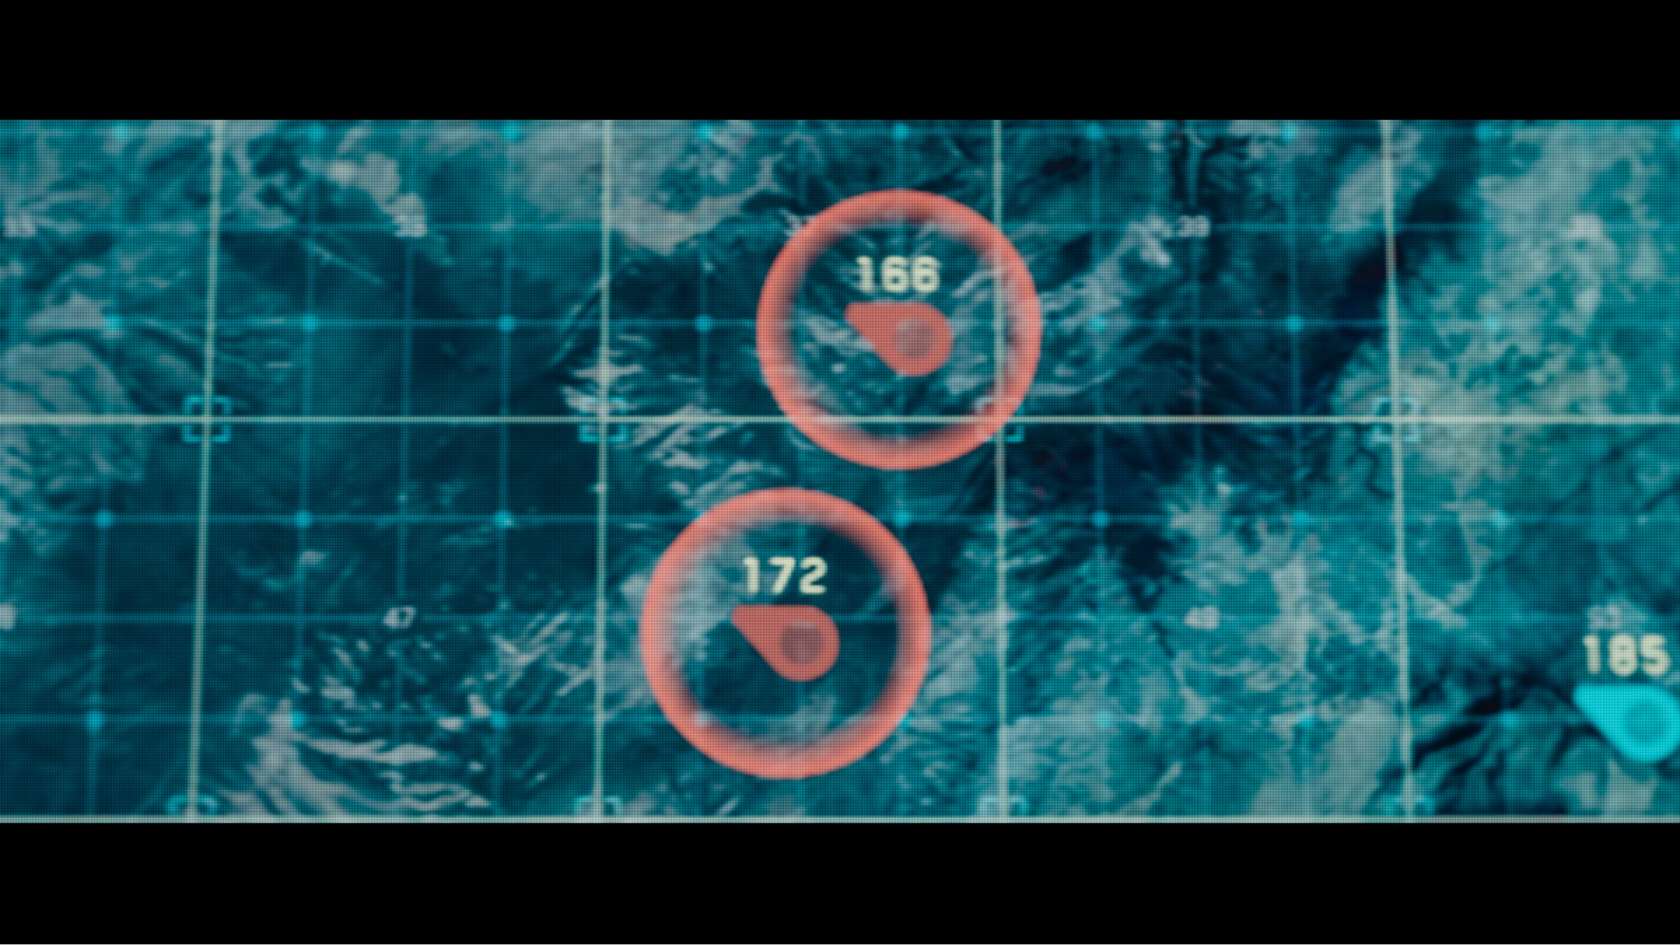 Large touch-based light table from the movie Oblivion cropped in to data that is showing alerts. The use of red in the interface design in Oblivion is provides valuable contrast against the blue-green landscape.